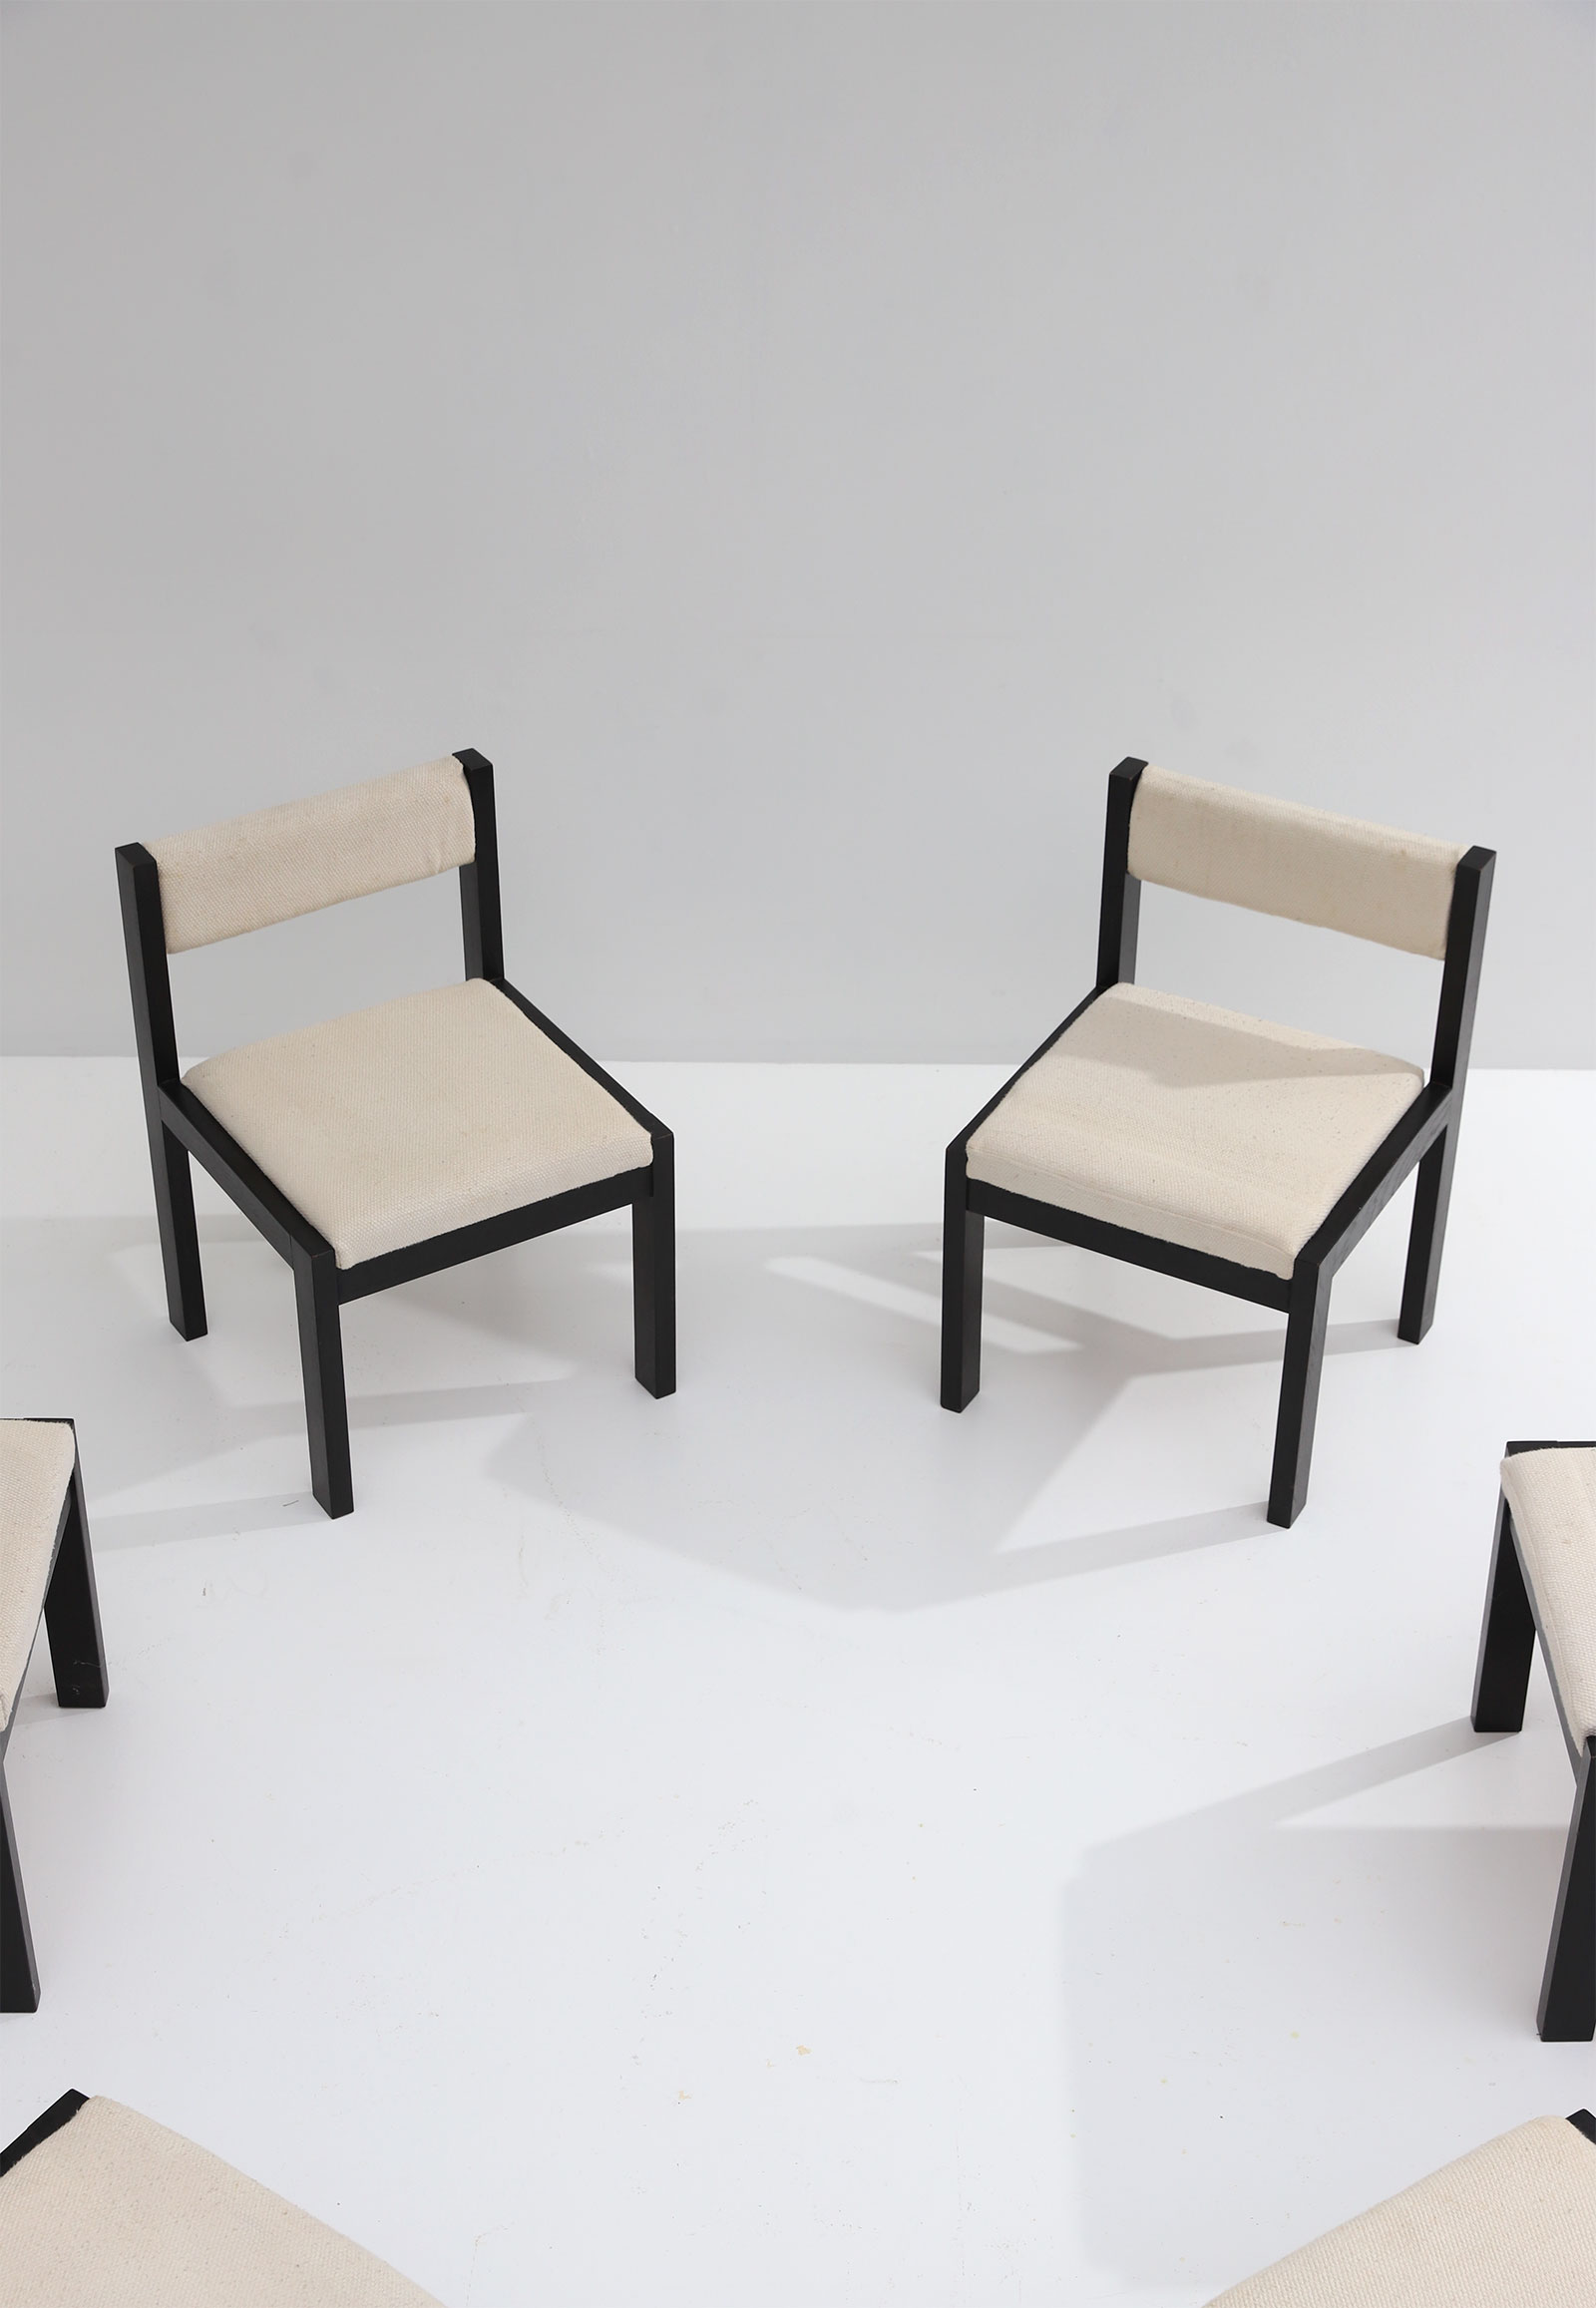 6 chairsimage 2